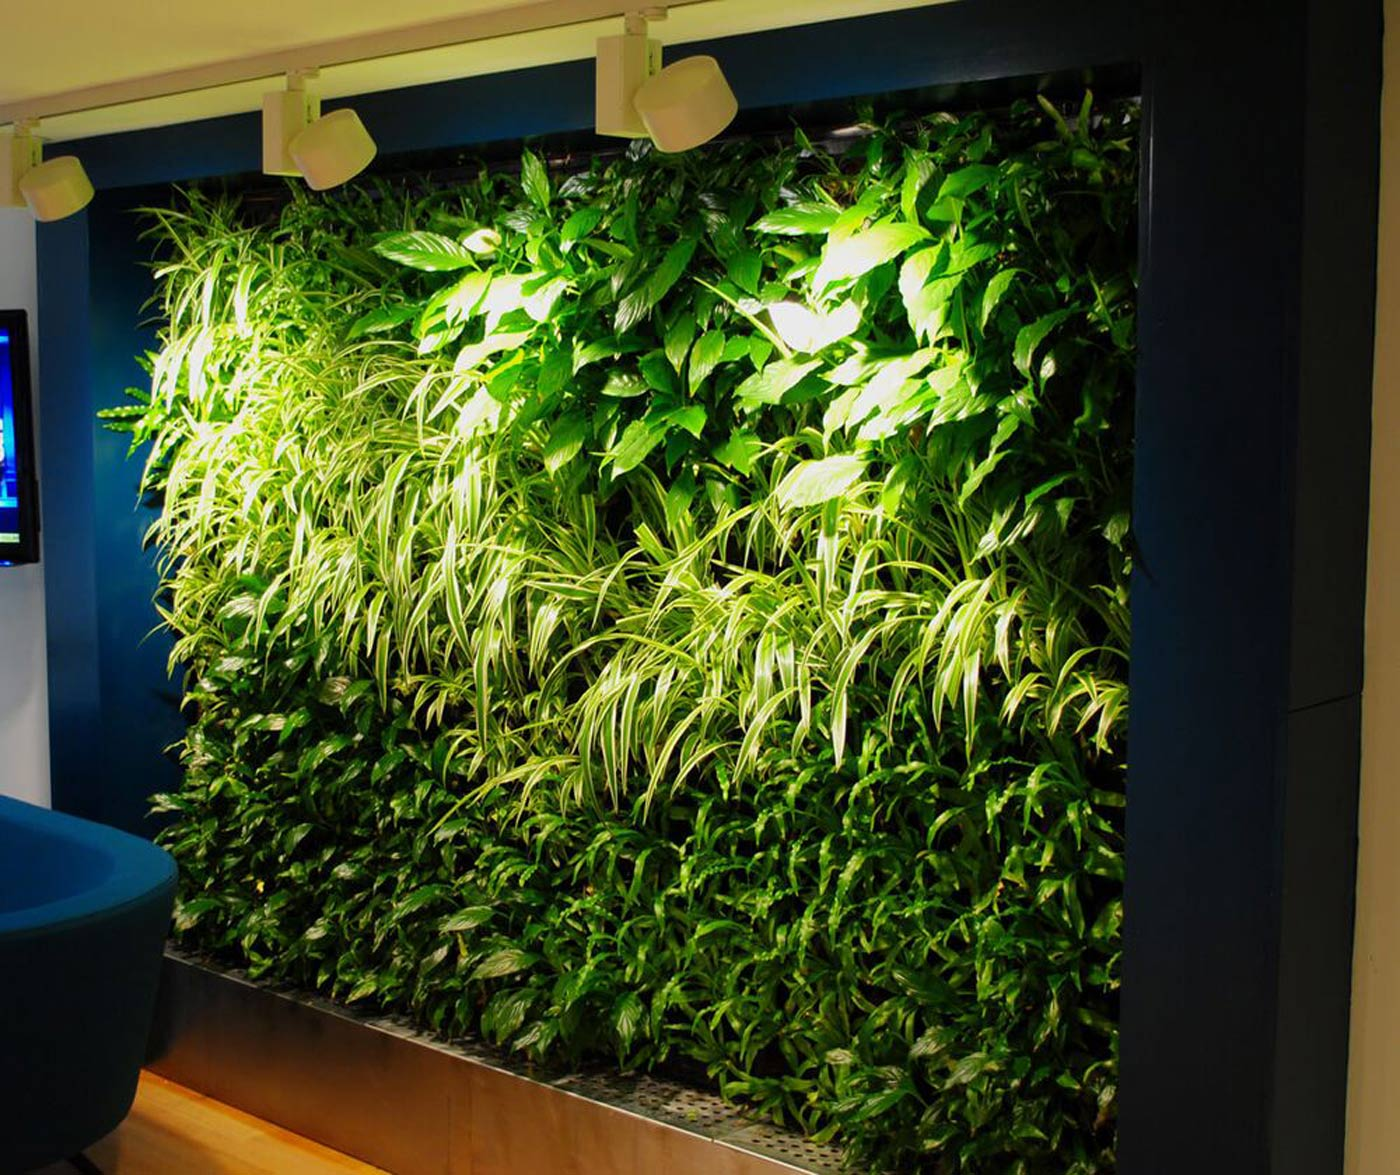 Images of green walls for offices office landscapes green walls with additional grow lighting improve the look of the wall help the plants aloadofball Gallery